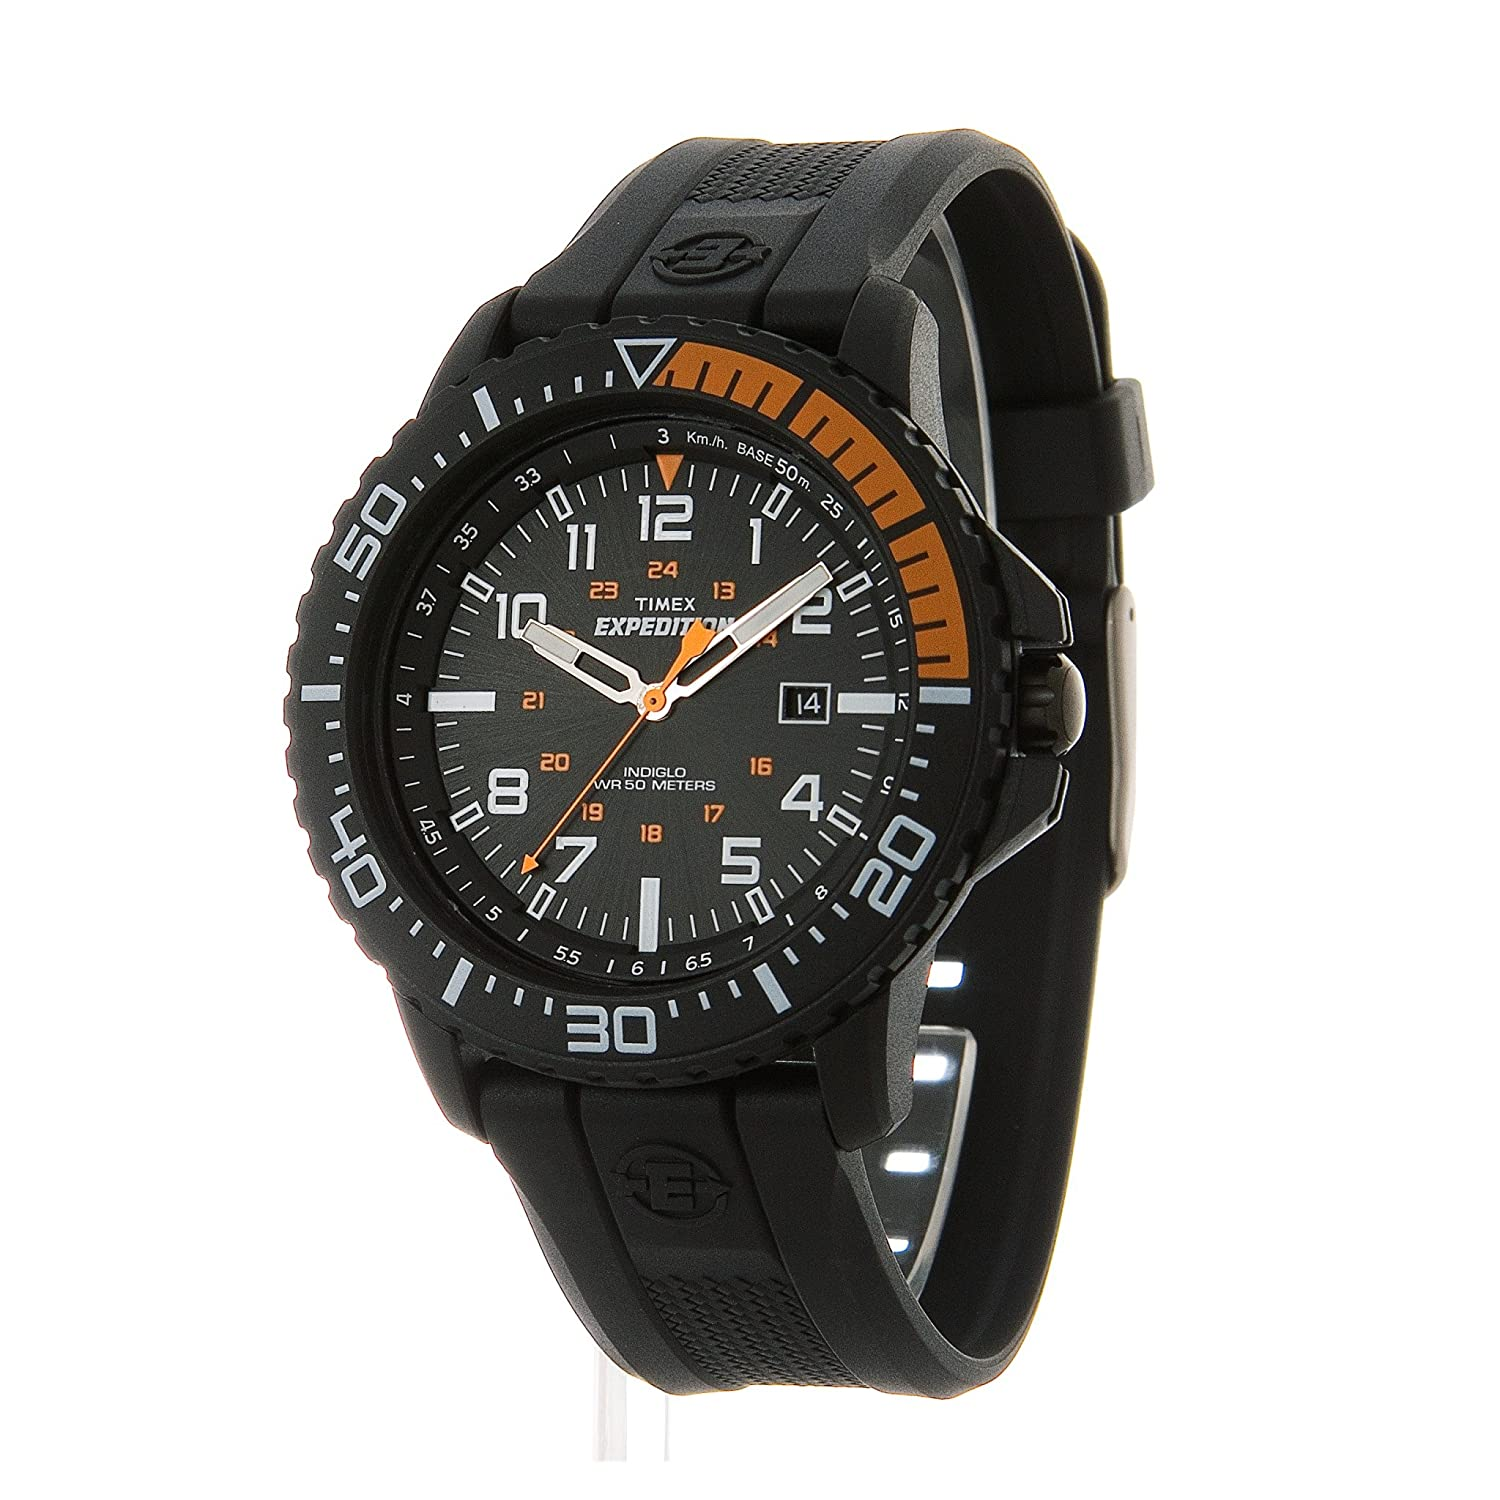 Amazon.com: Timex T49940 Mens Expedition Uplander Black Watch: Health & Personal Care